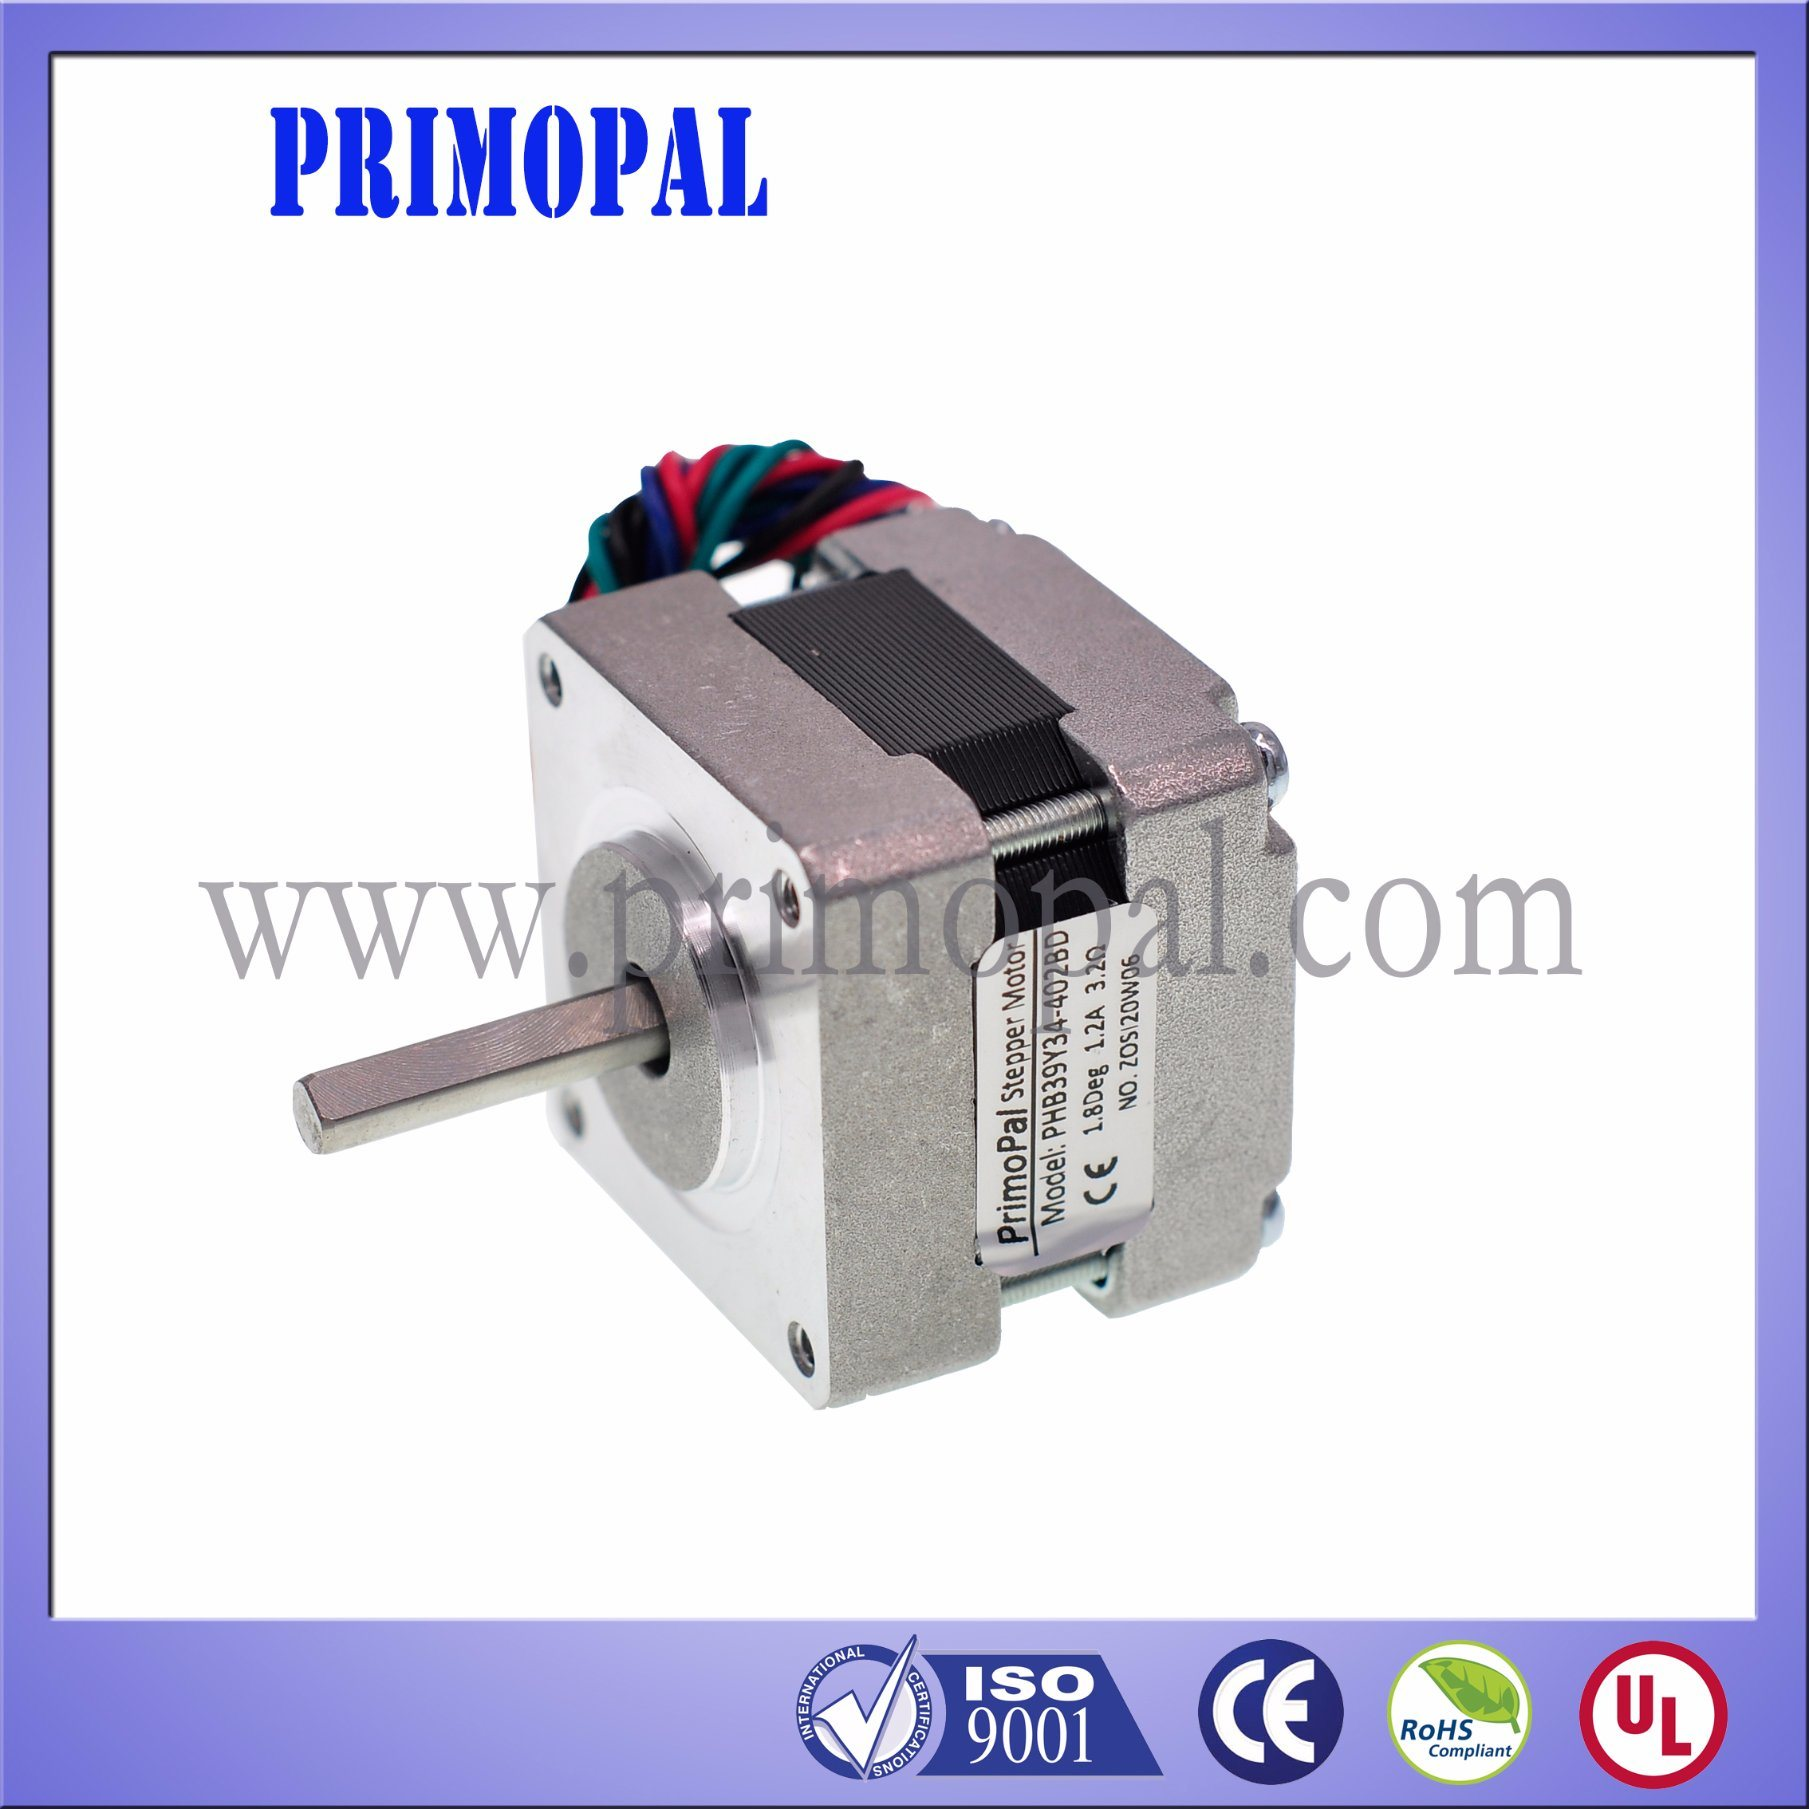 0.6A 0.9 Degree 2 Phase NEMA 16 Stepper Motor for CNC